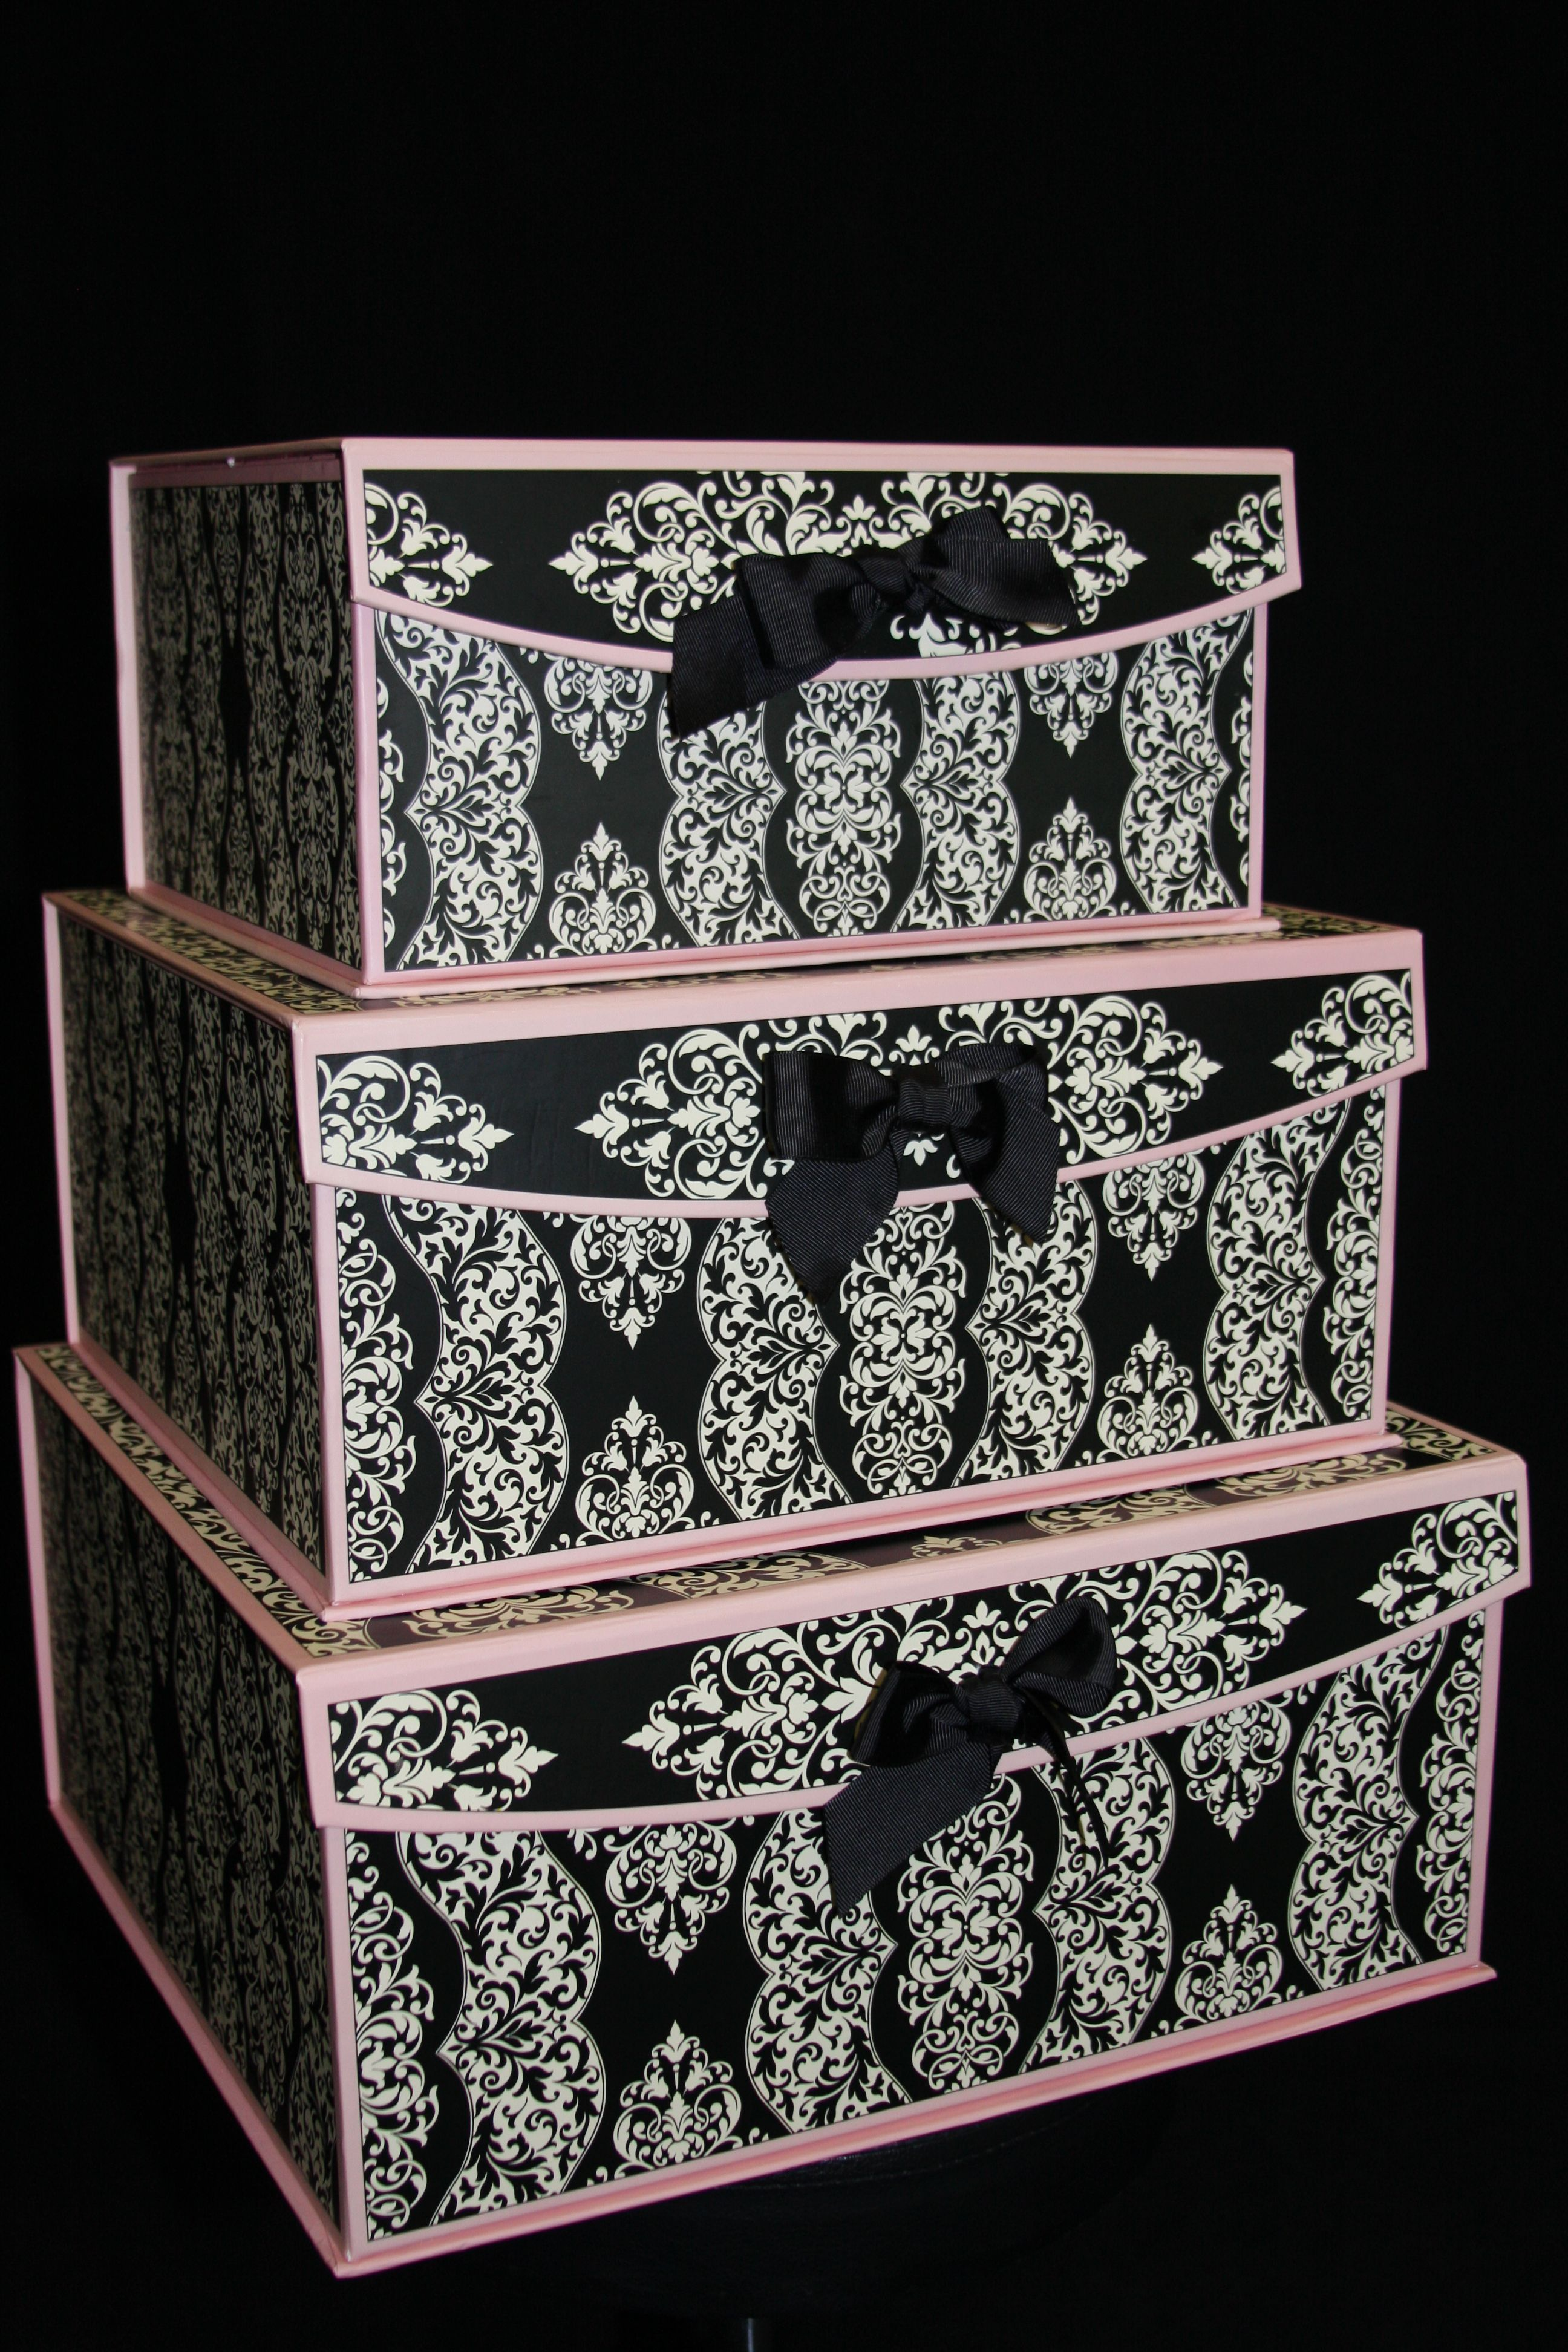 Use Pretty Storage Boxes In Closet Or Bedroom For Belts, Scarves, Lingerie,  Etc